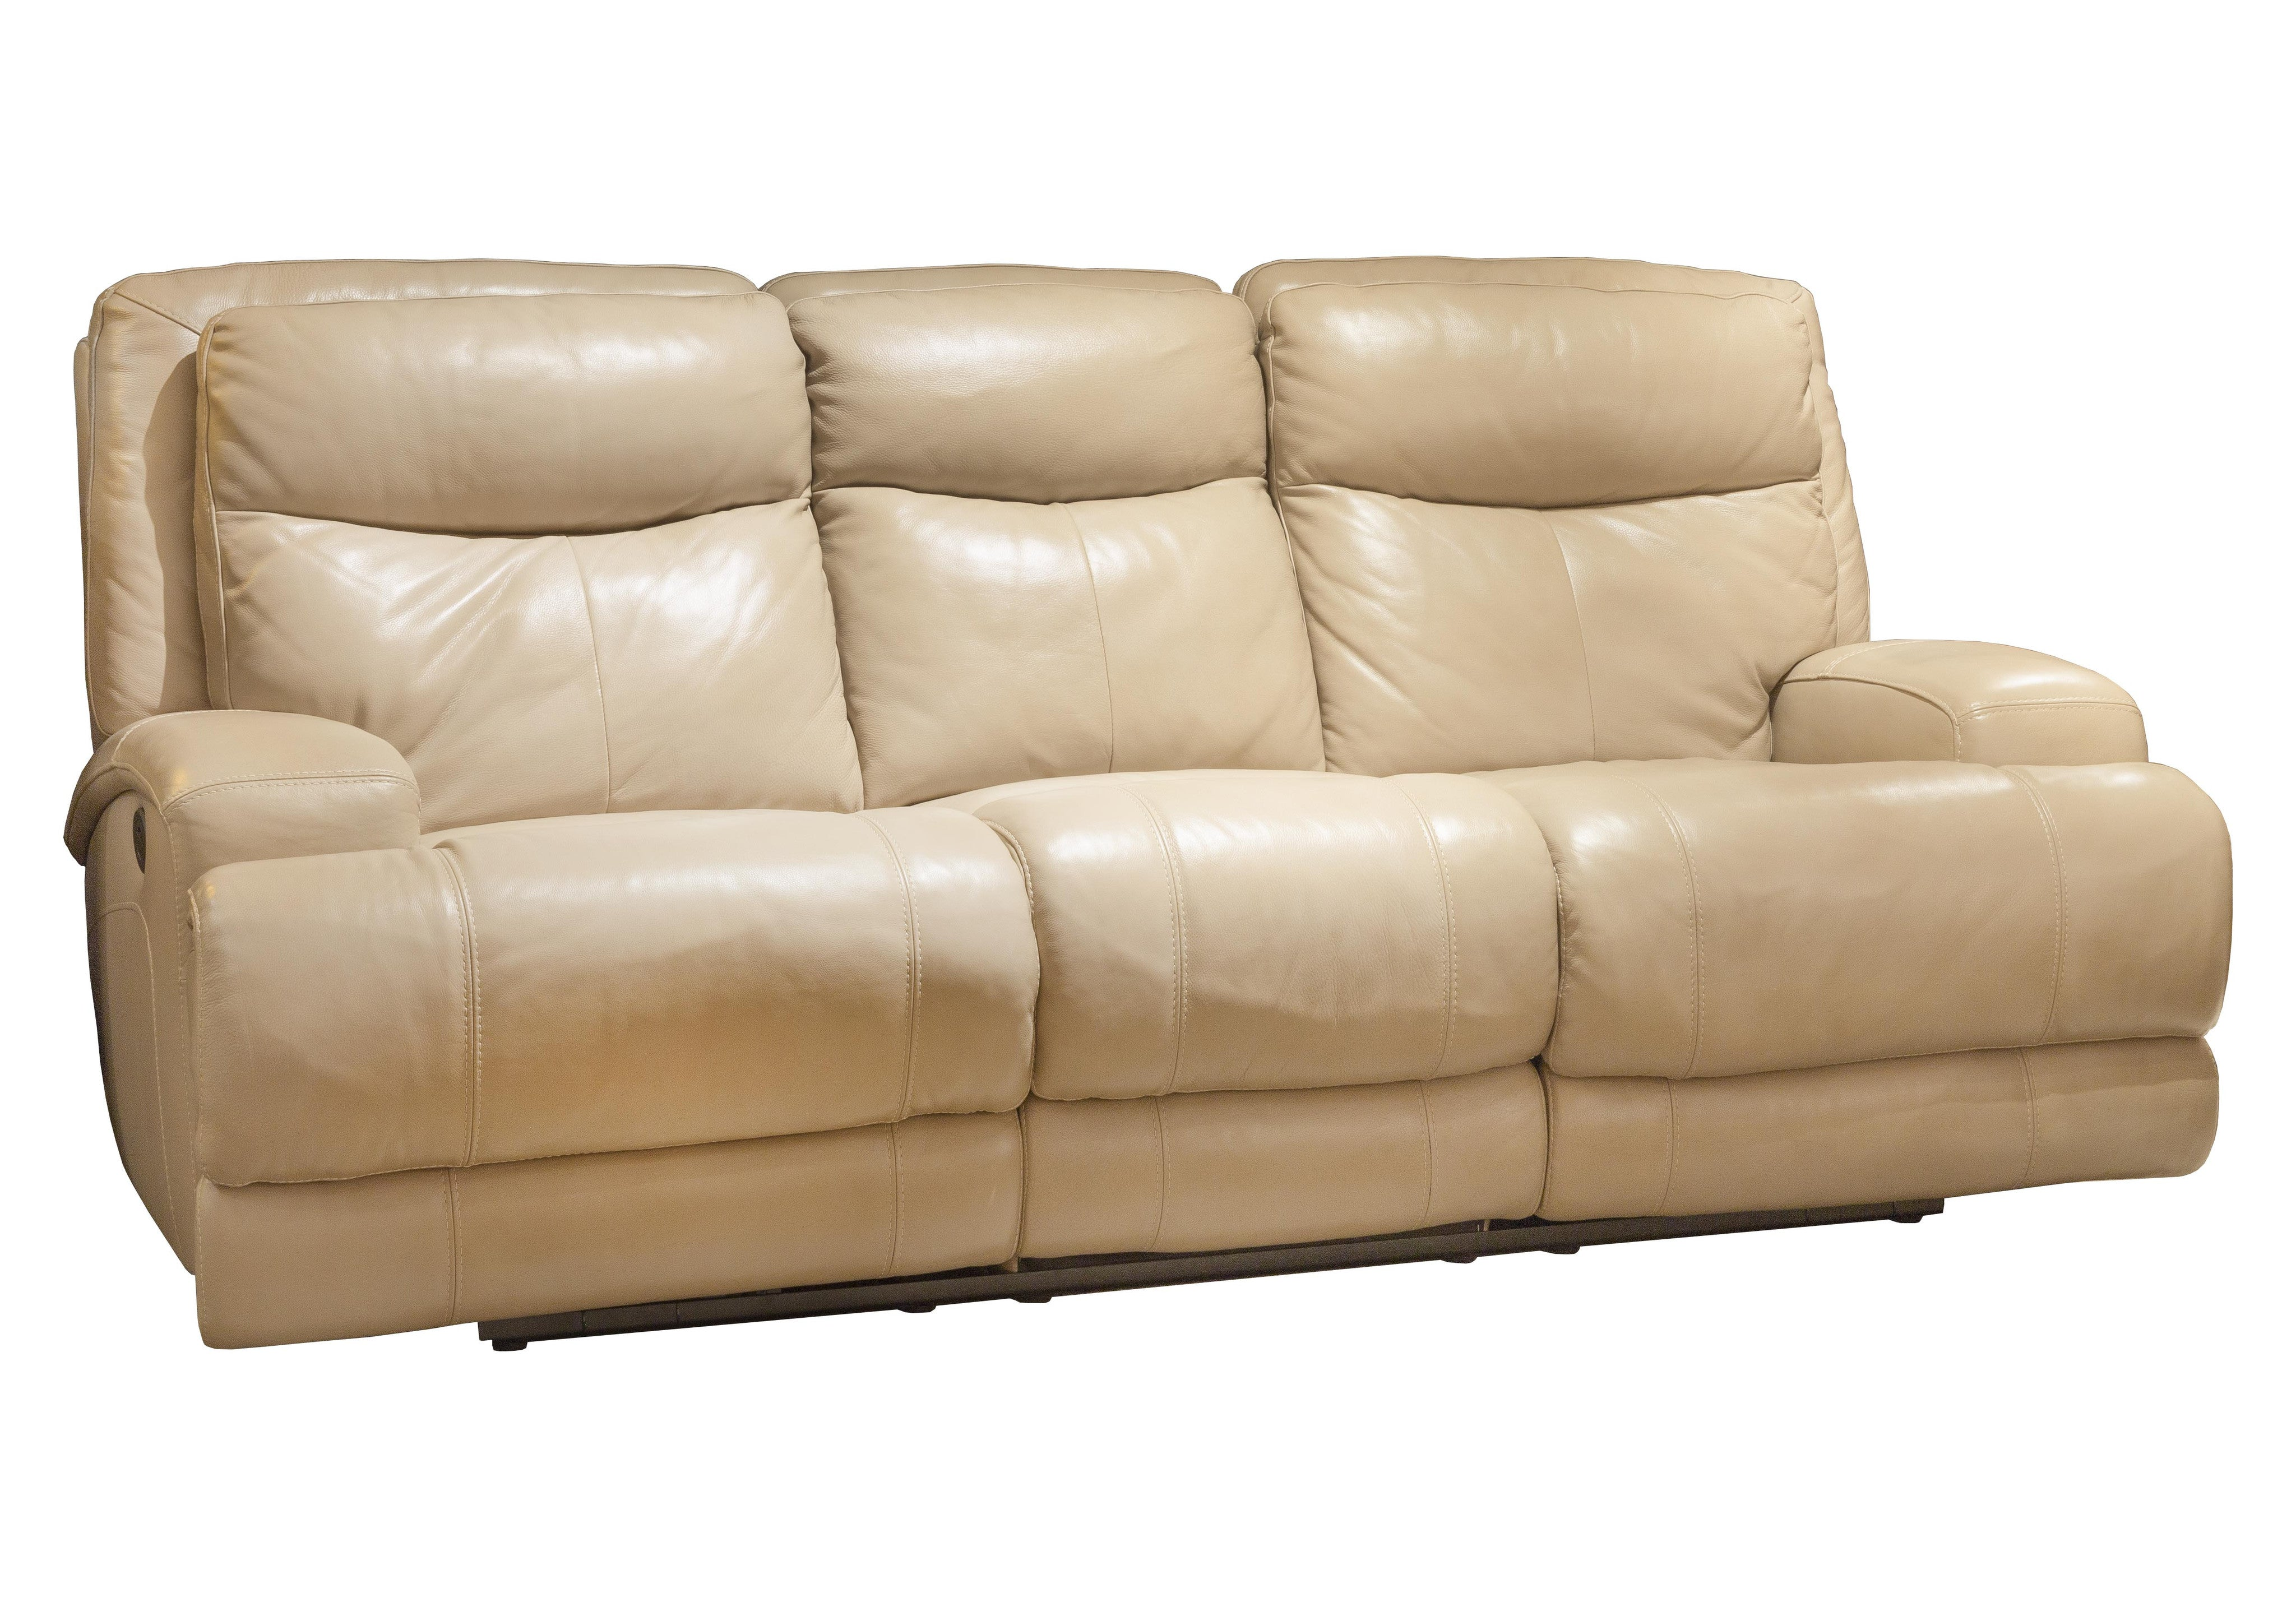 3692ED Power Recliner Leather Sofa   Beige | Violino Limited